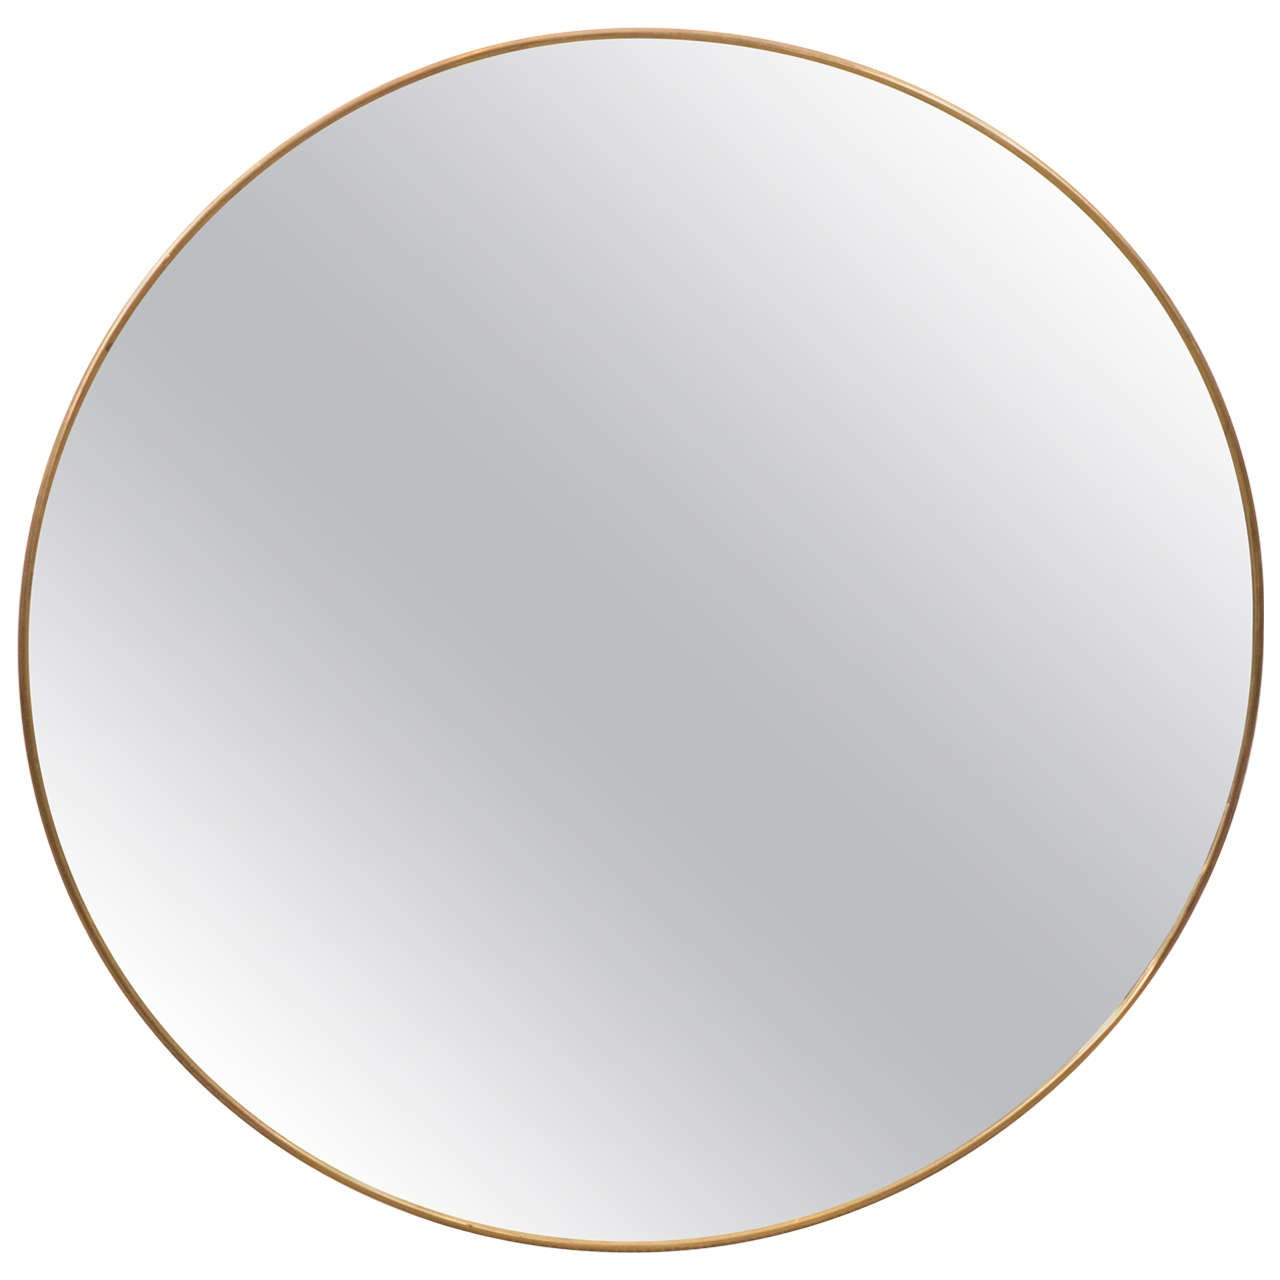 Italian modernist brass framed round mirror 1950s at 1stdibs for Round mirror